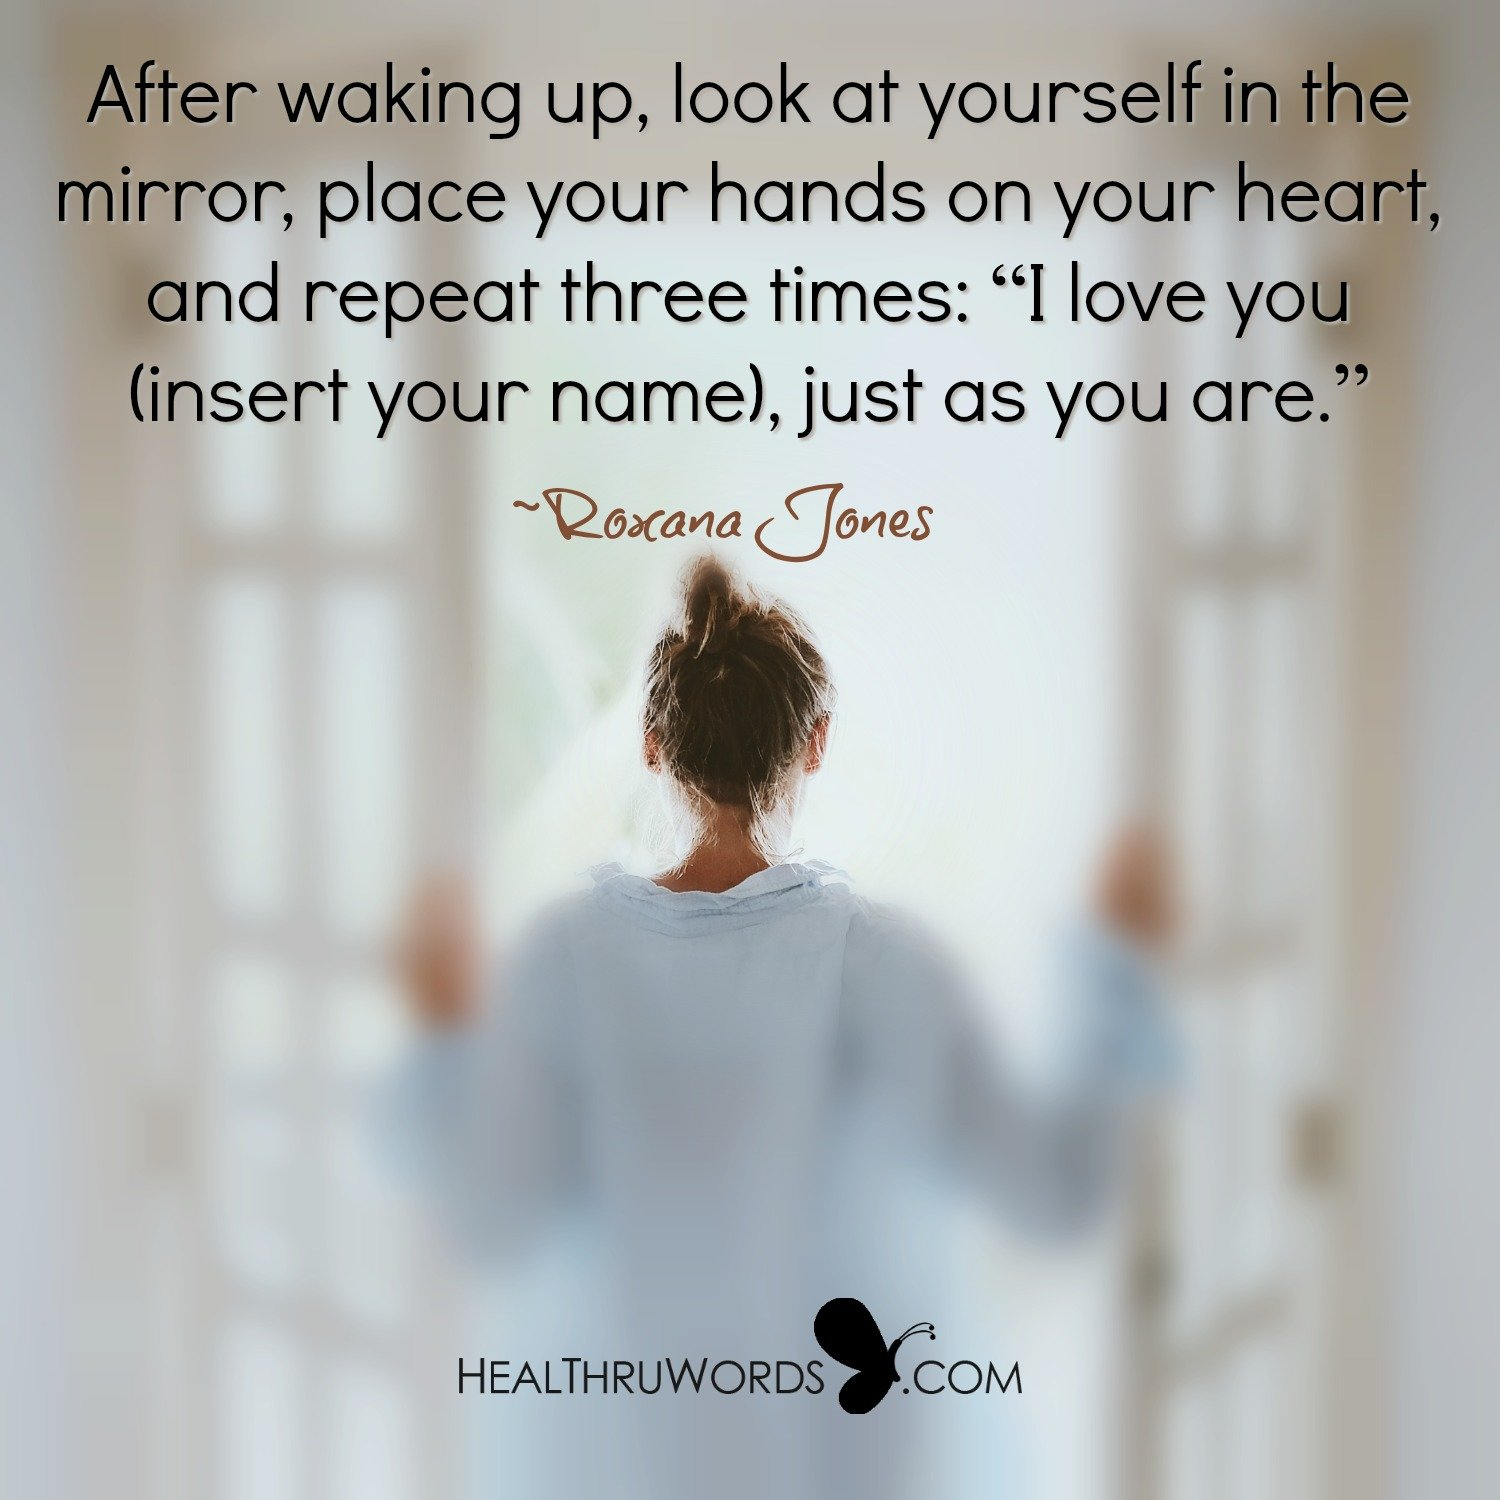 Healthruwords.com_-_Inspirational_Images_-_Just-As-You-Are-.jpg